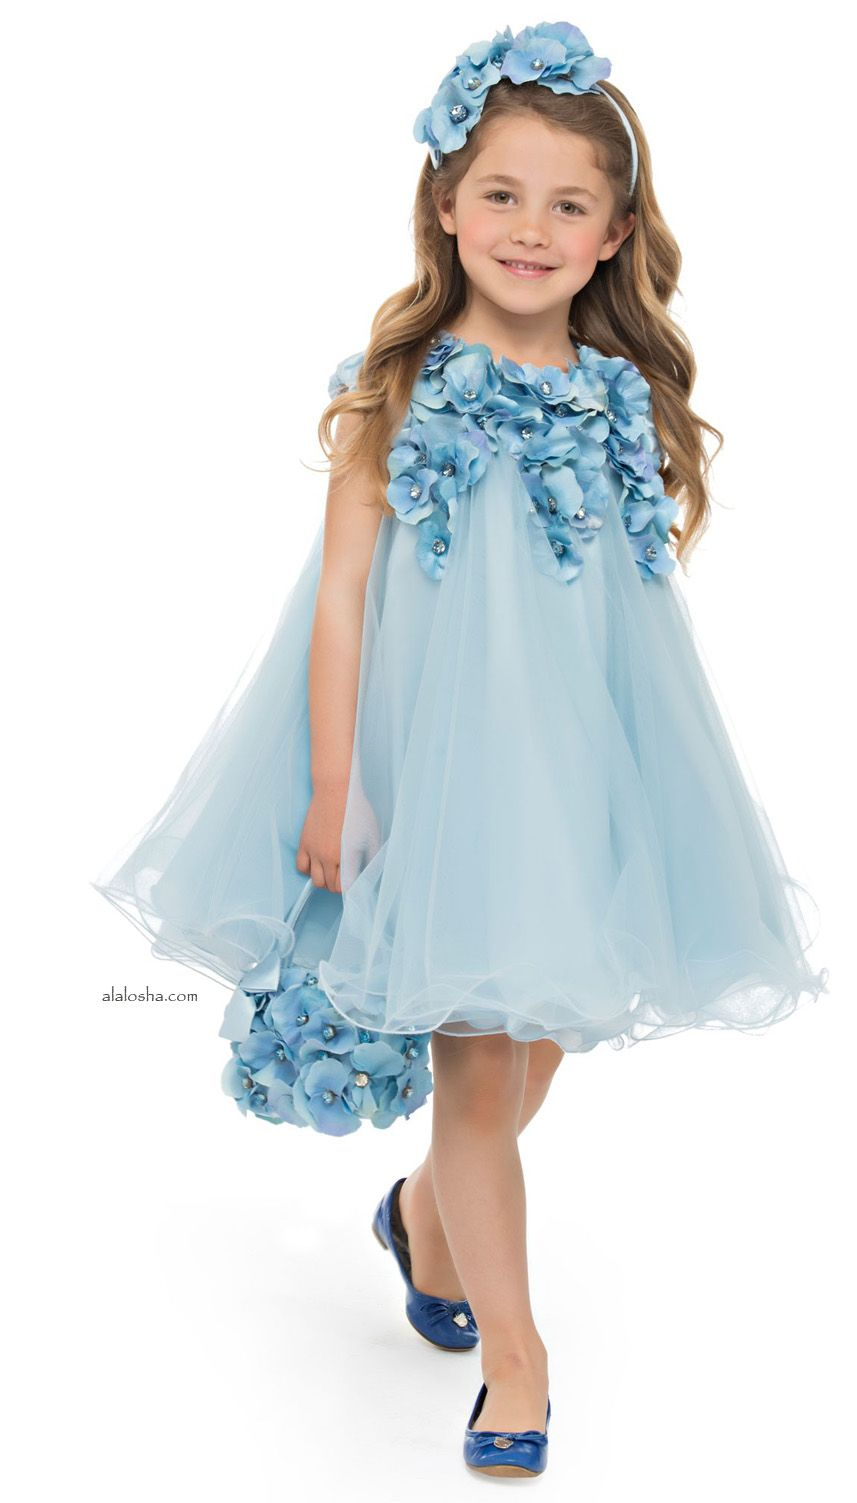 2e8d41090af3 ALALOSHA  VOGUE ENFANTS  NEW season  The Lesy miracle dresses ...